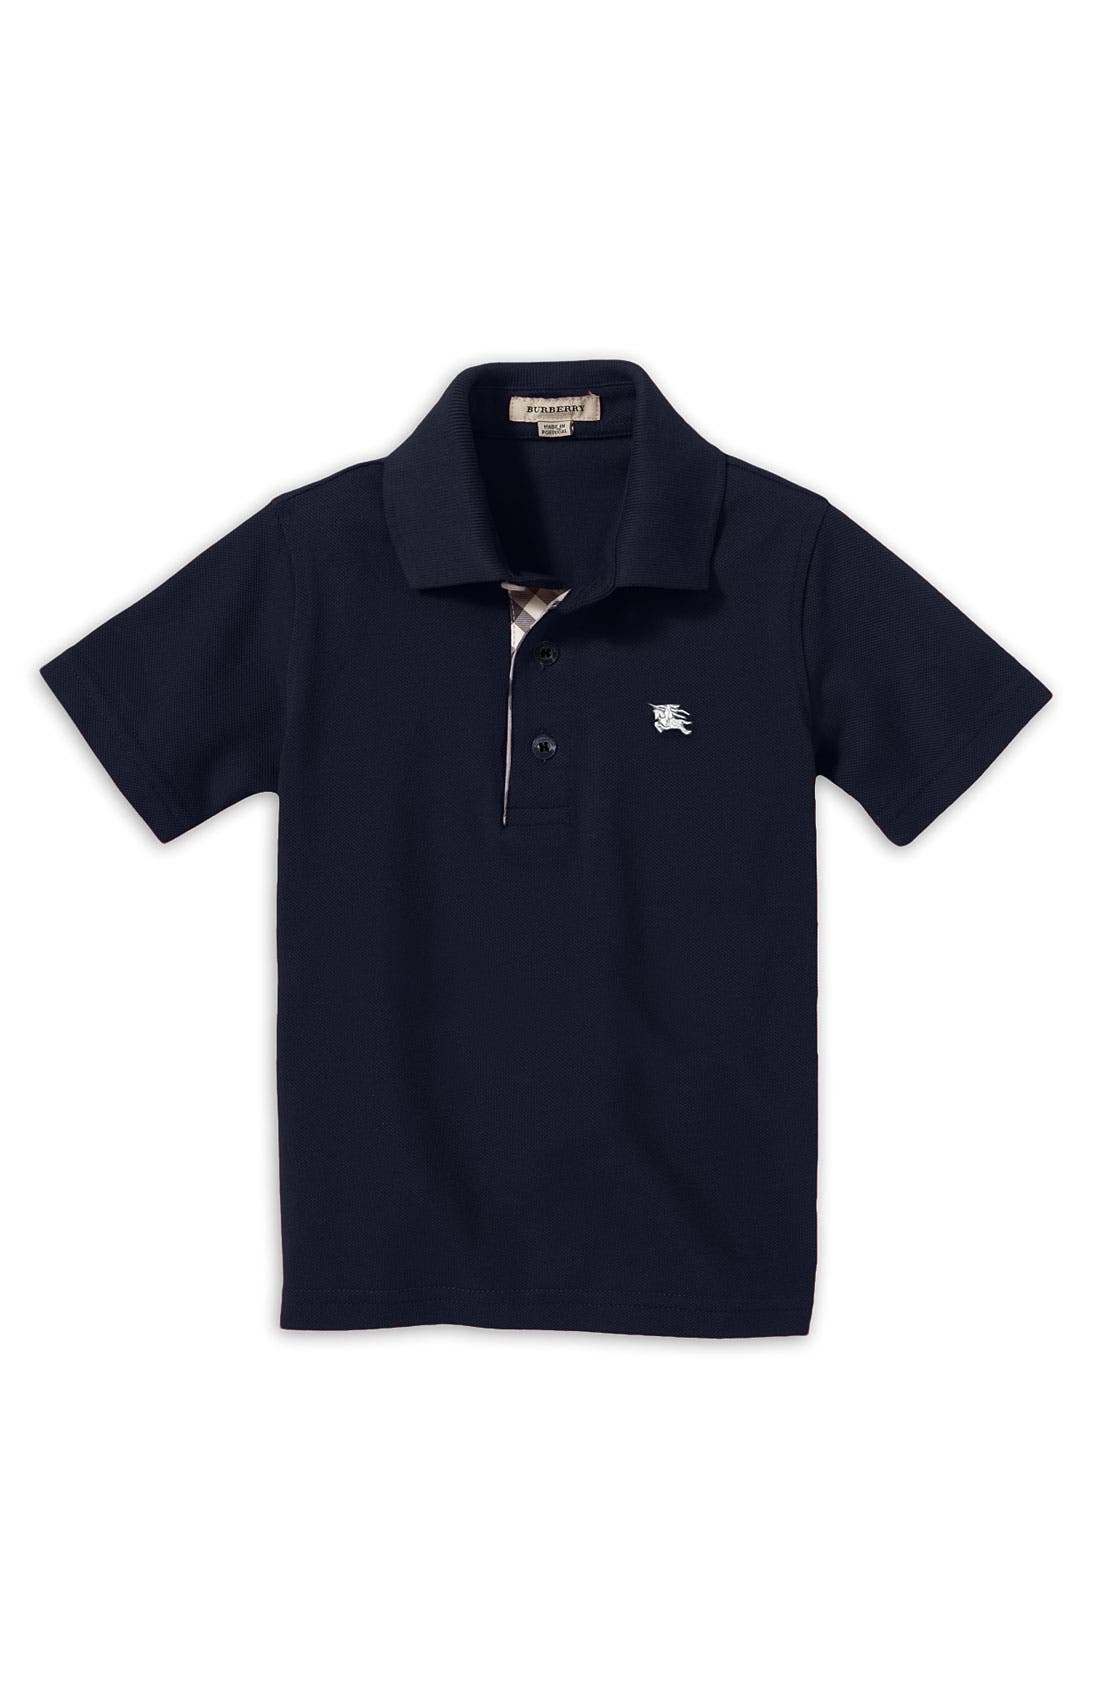 Alternate Image 1 Selected - Burberry Short Sleeve Polo (Toddler & Little Boys)